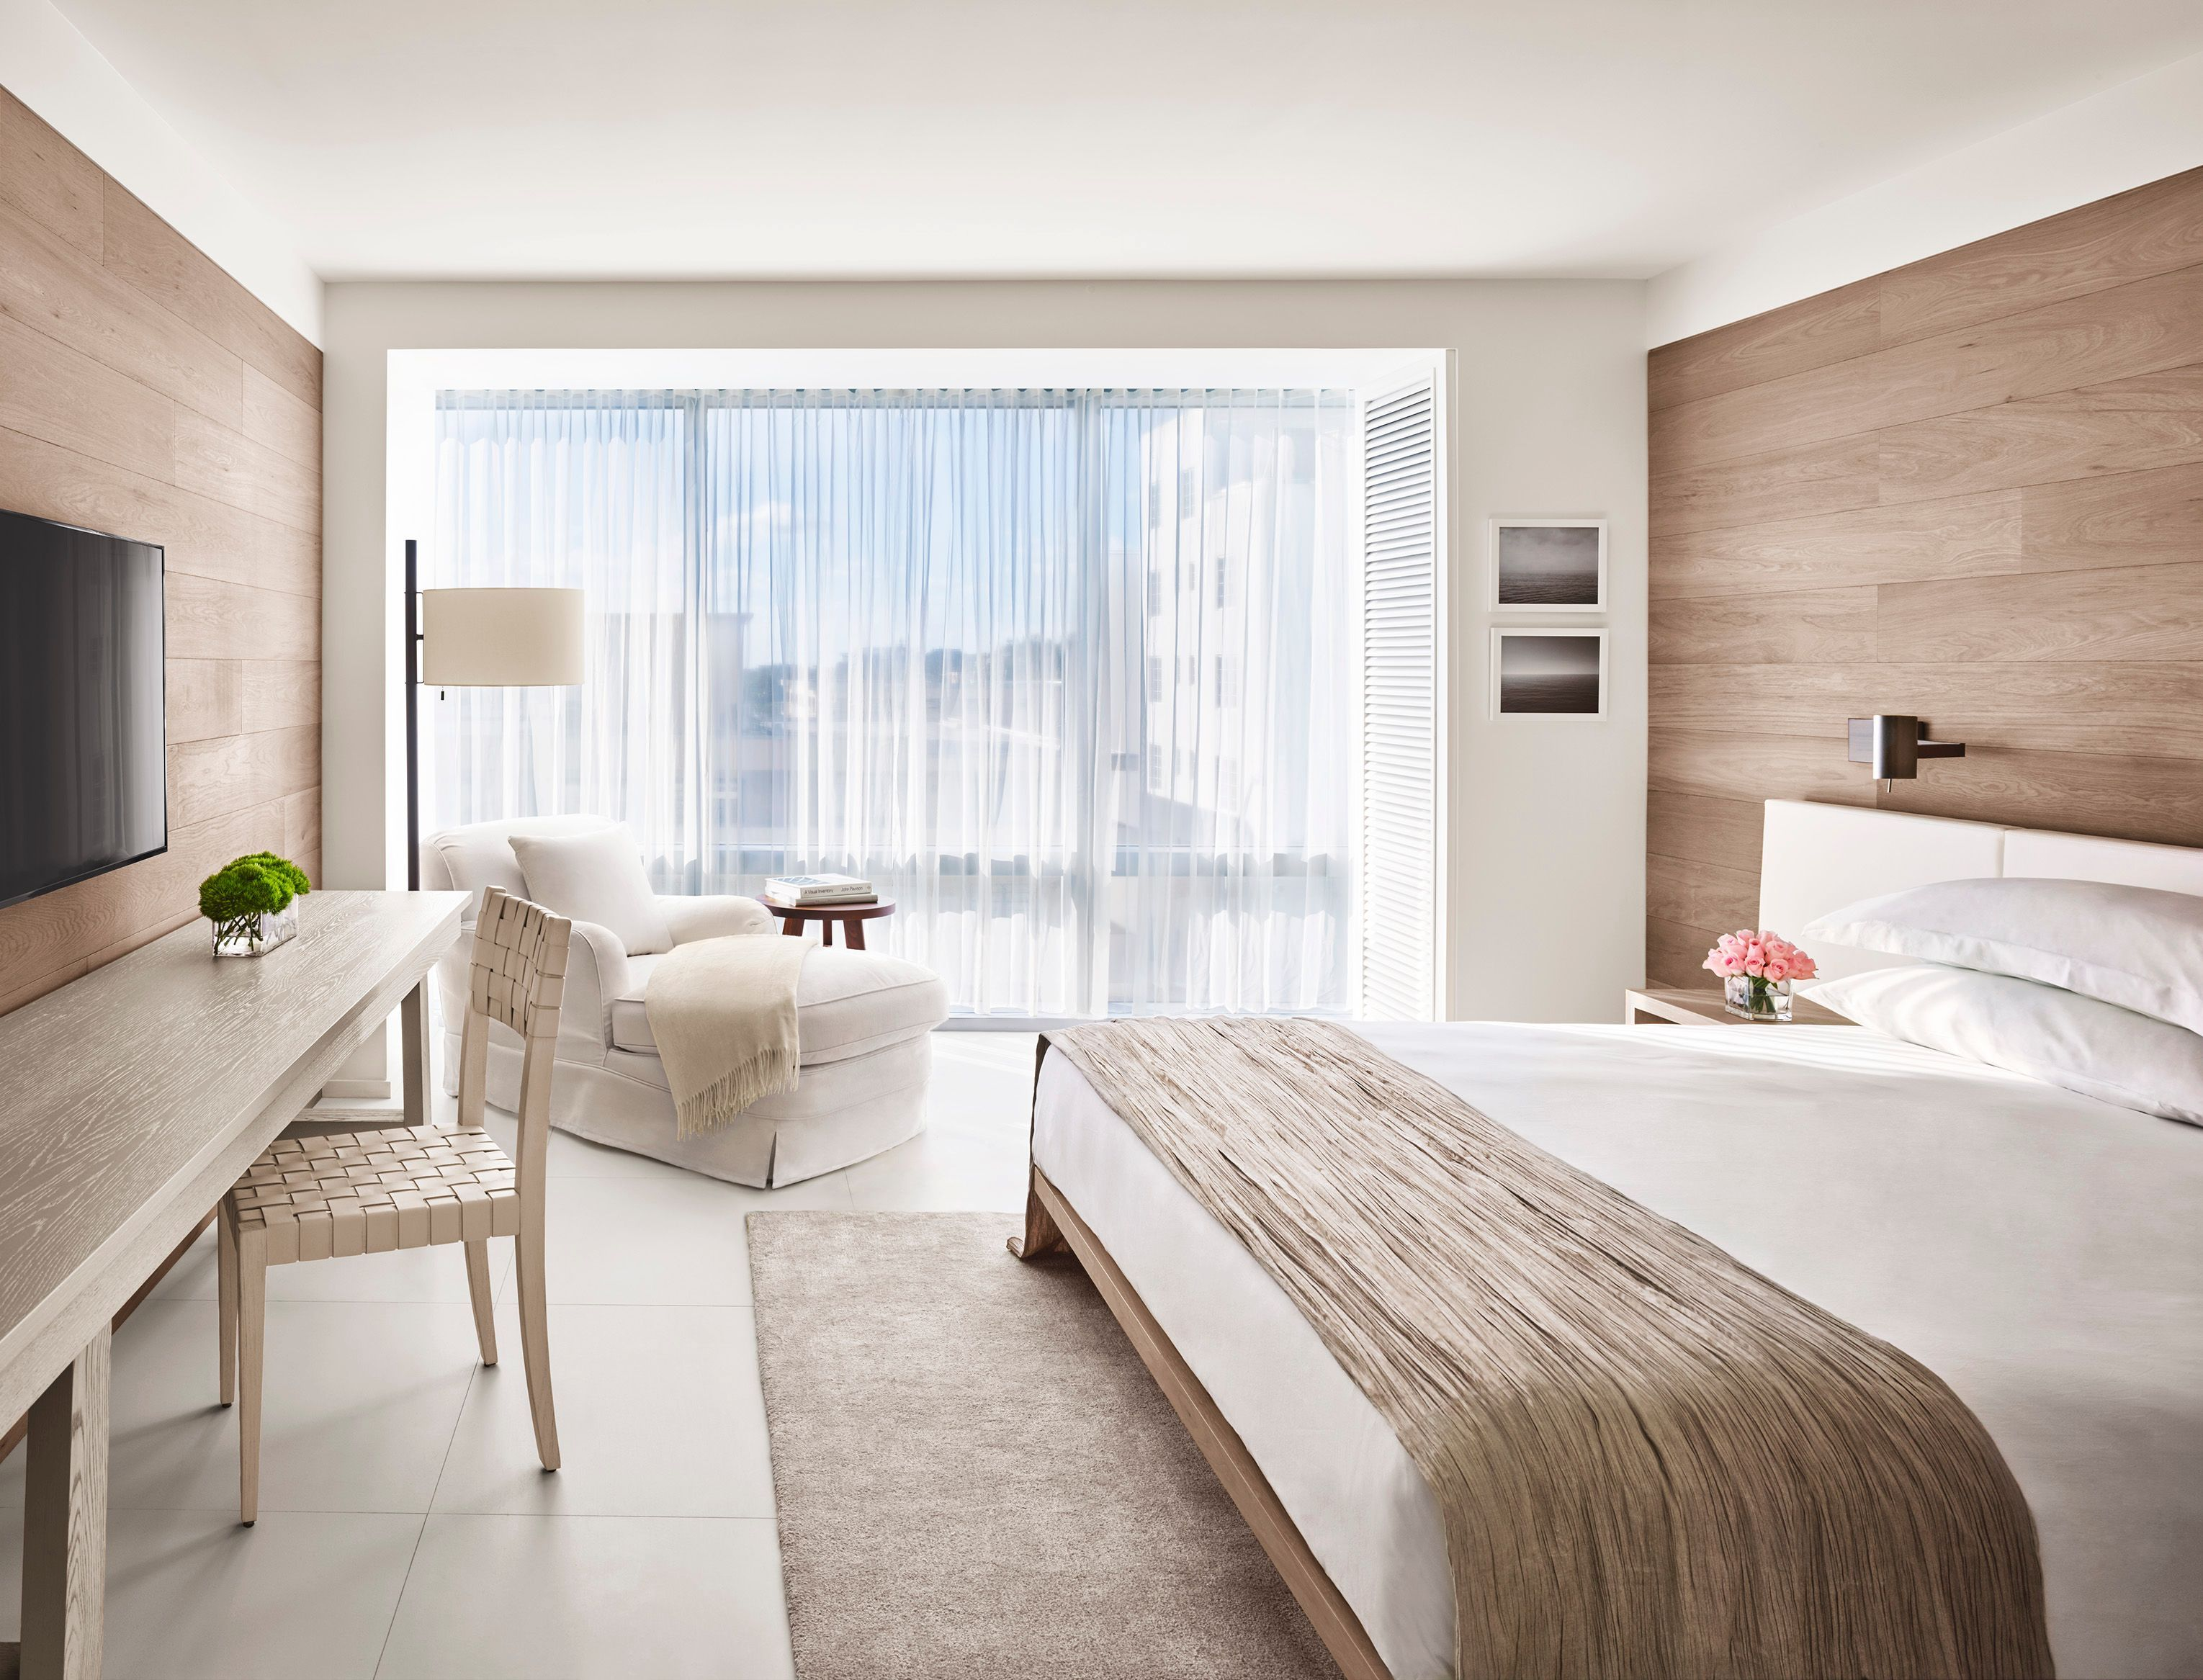 Yabu pushelberg the miami beach edition bedroom luxury for The boutique hotel